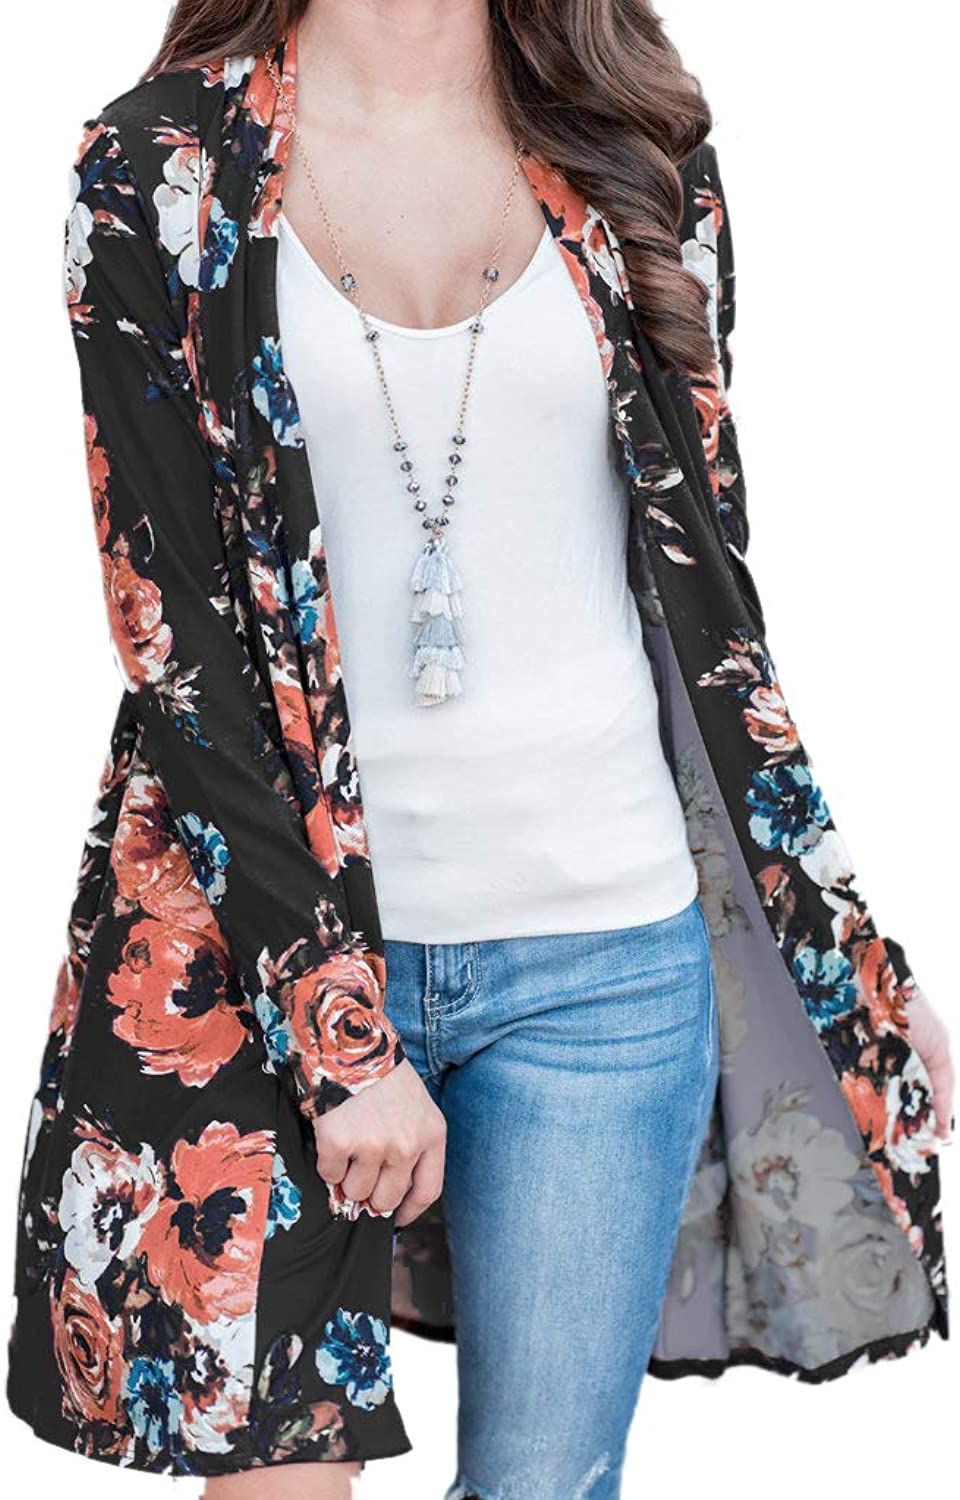 WFTBDREAM Fall Floral Kimono Cardigans for Women Long Sleeve Floral Print Outer